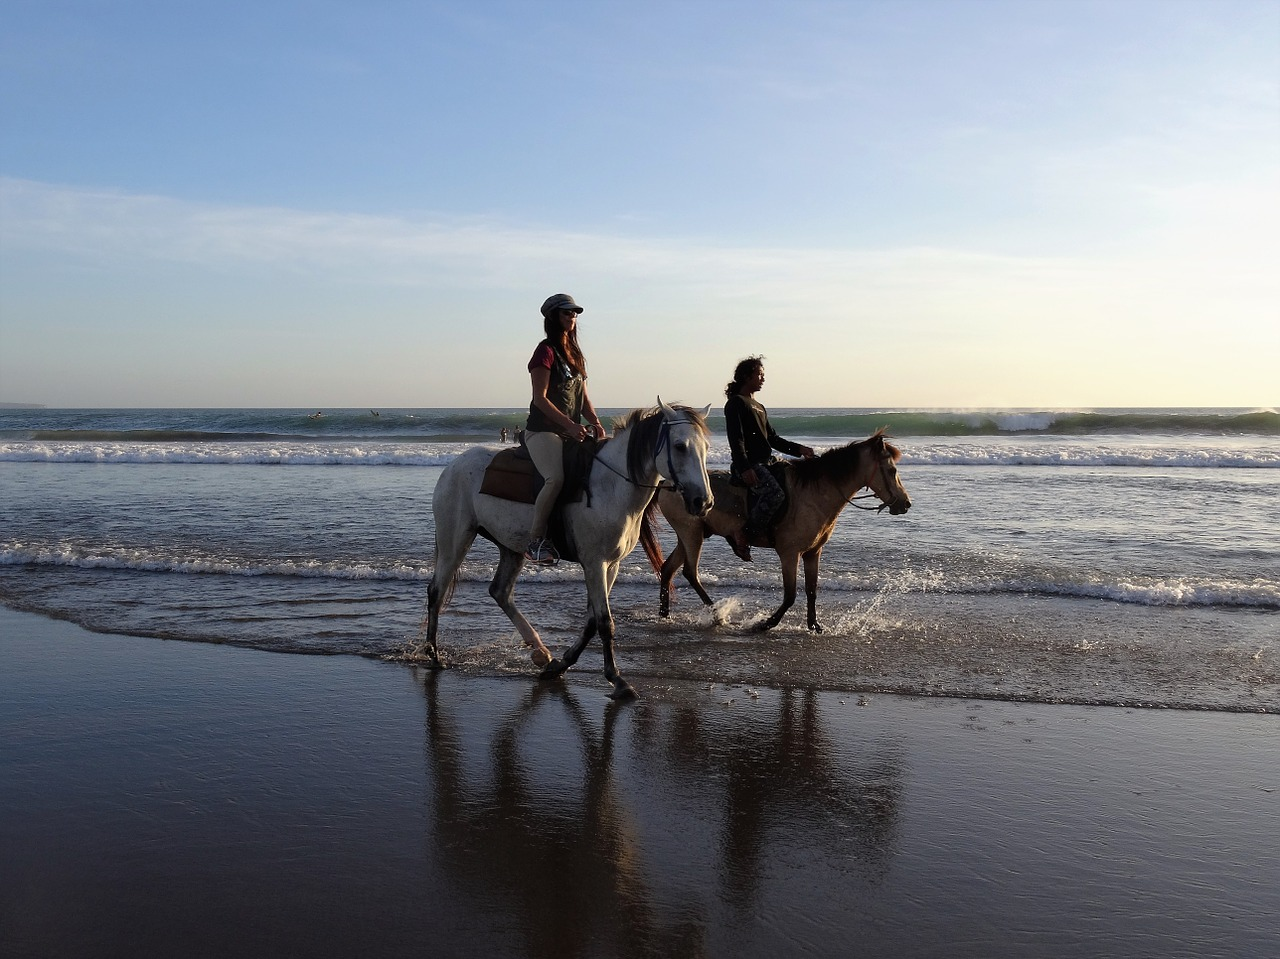 Horse riding on beach in Bali